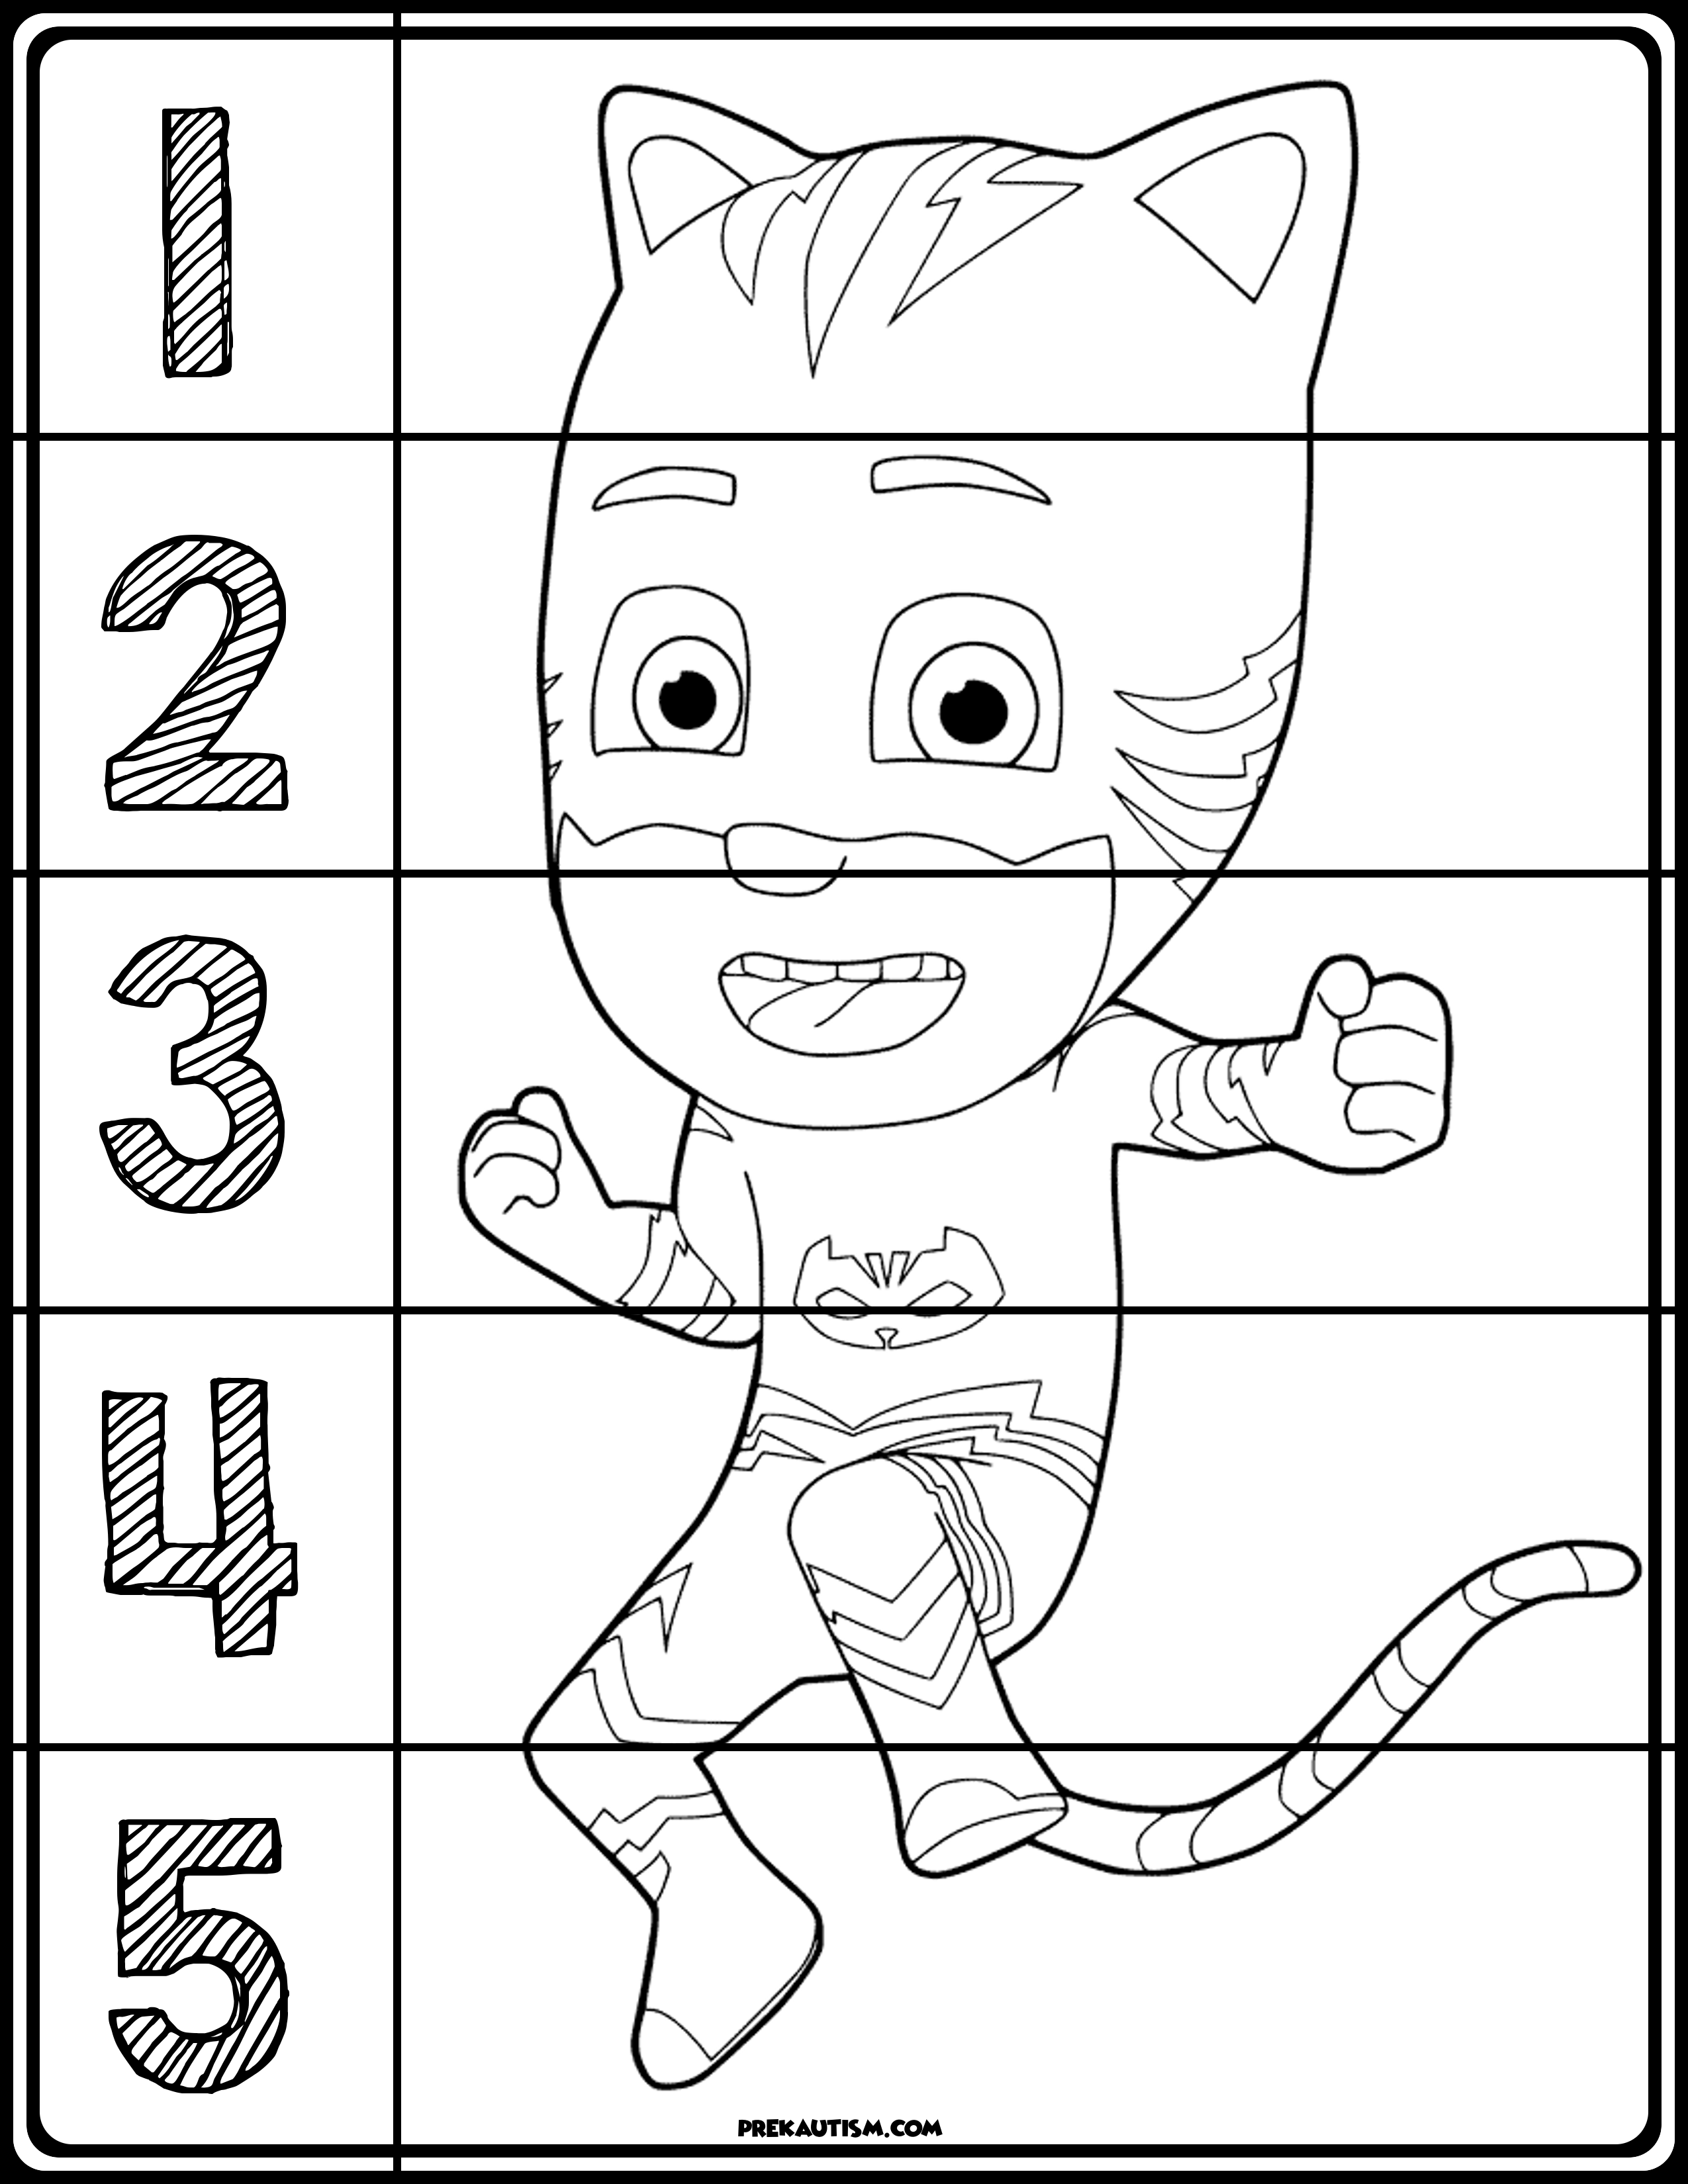 PJ Masks Coloring Number Puzzles | Number puzzles, Free printable ...